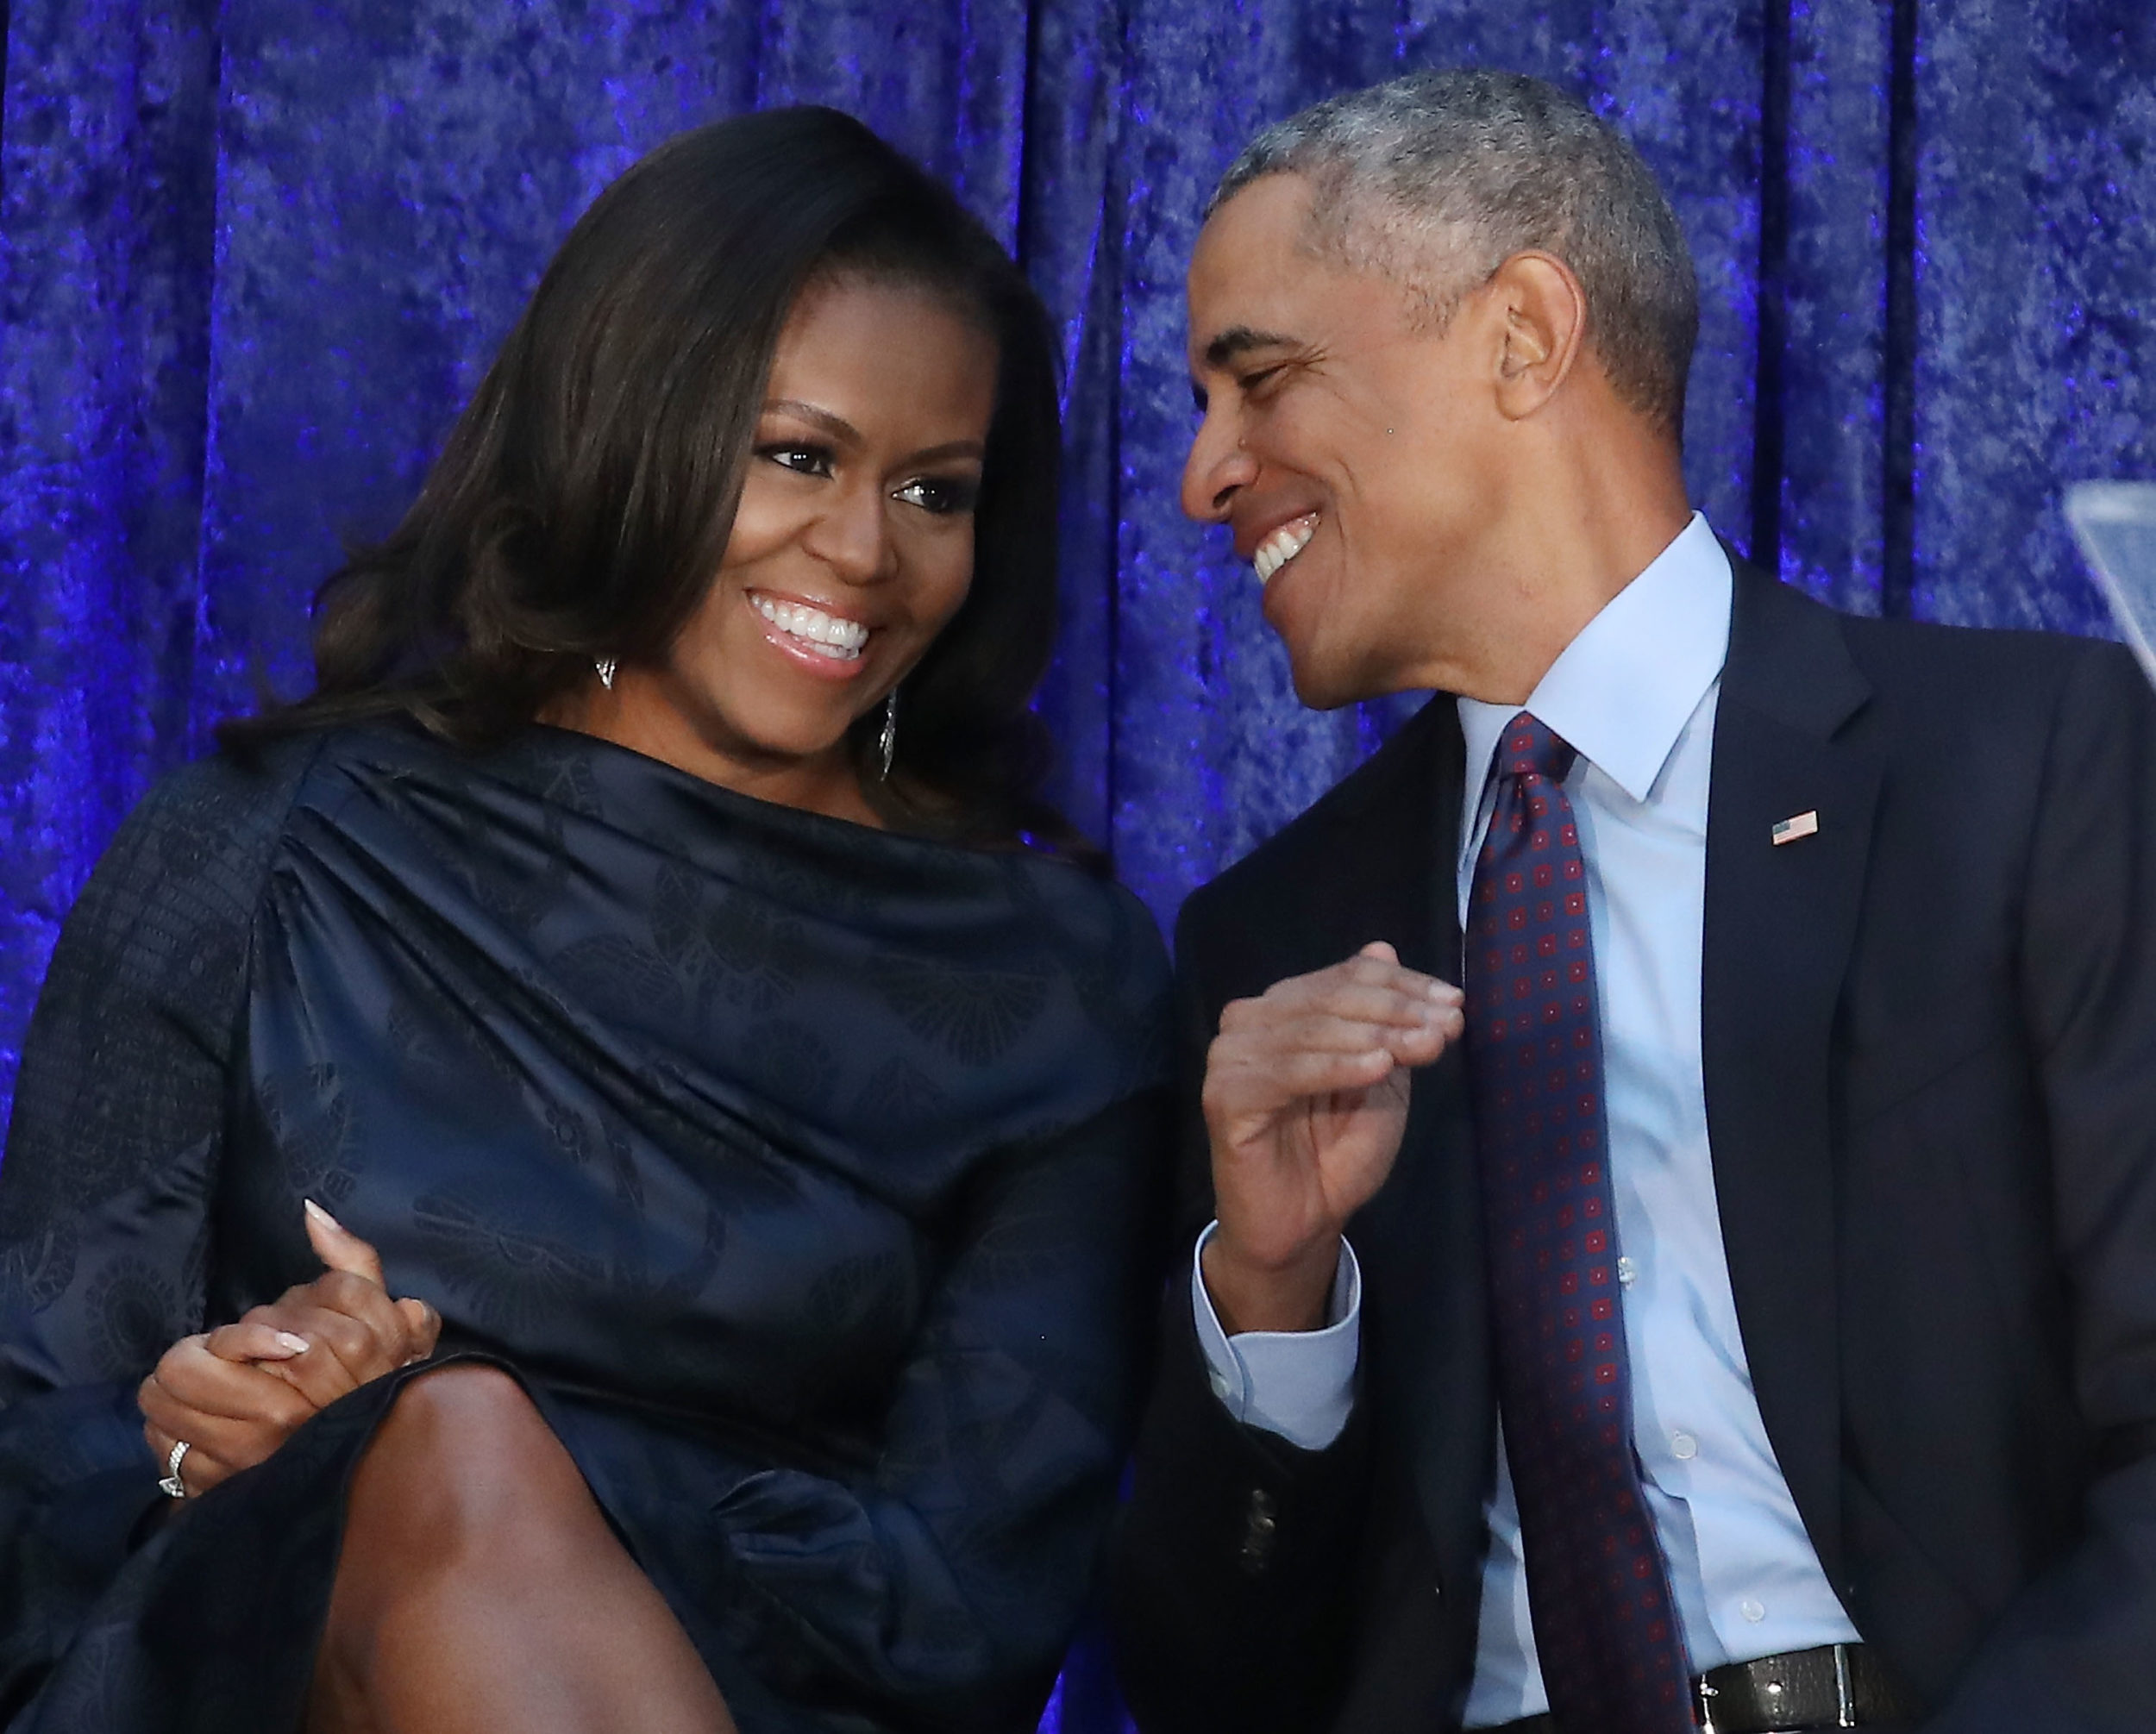 Barack and Michelle Obama danced the night away at the <em>On the Run II</em> tour, and the videos are legendary